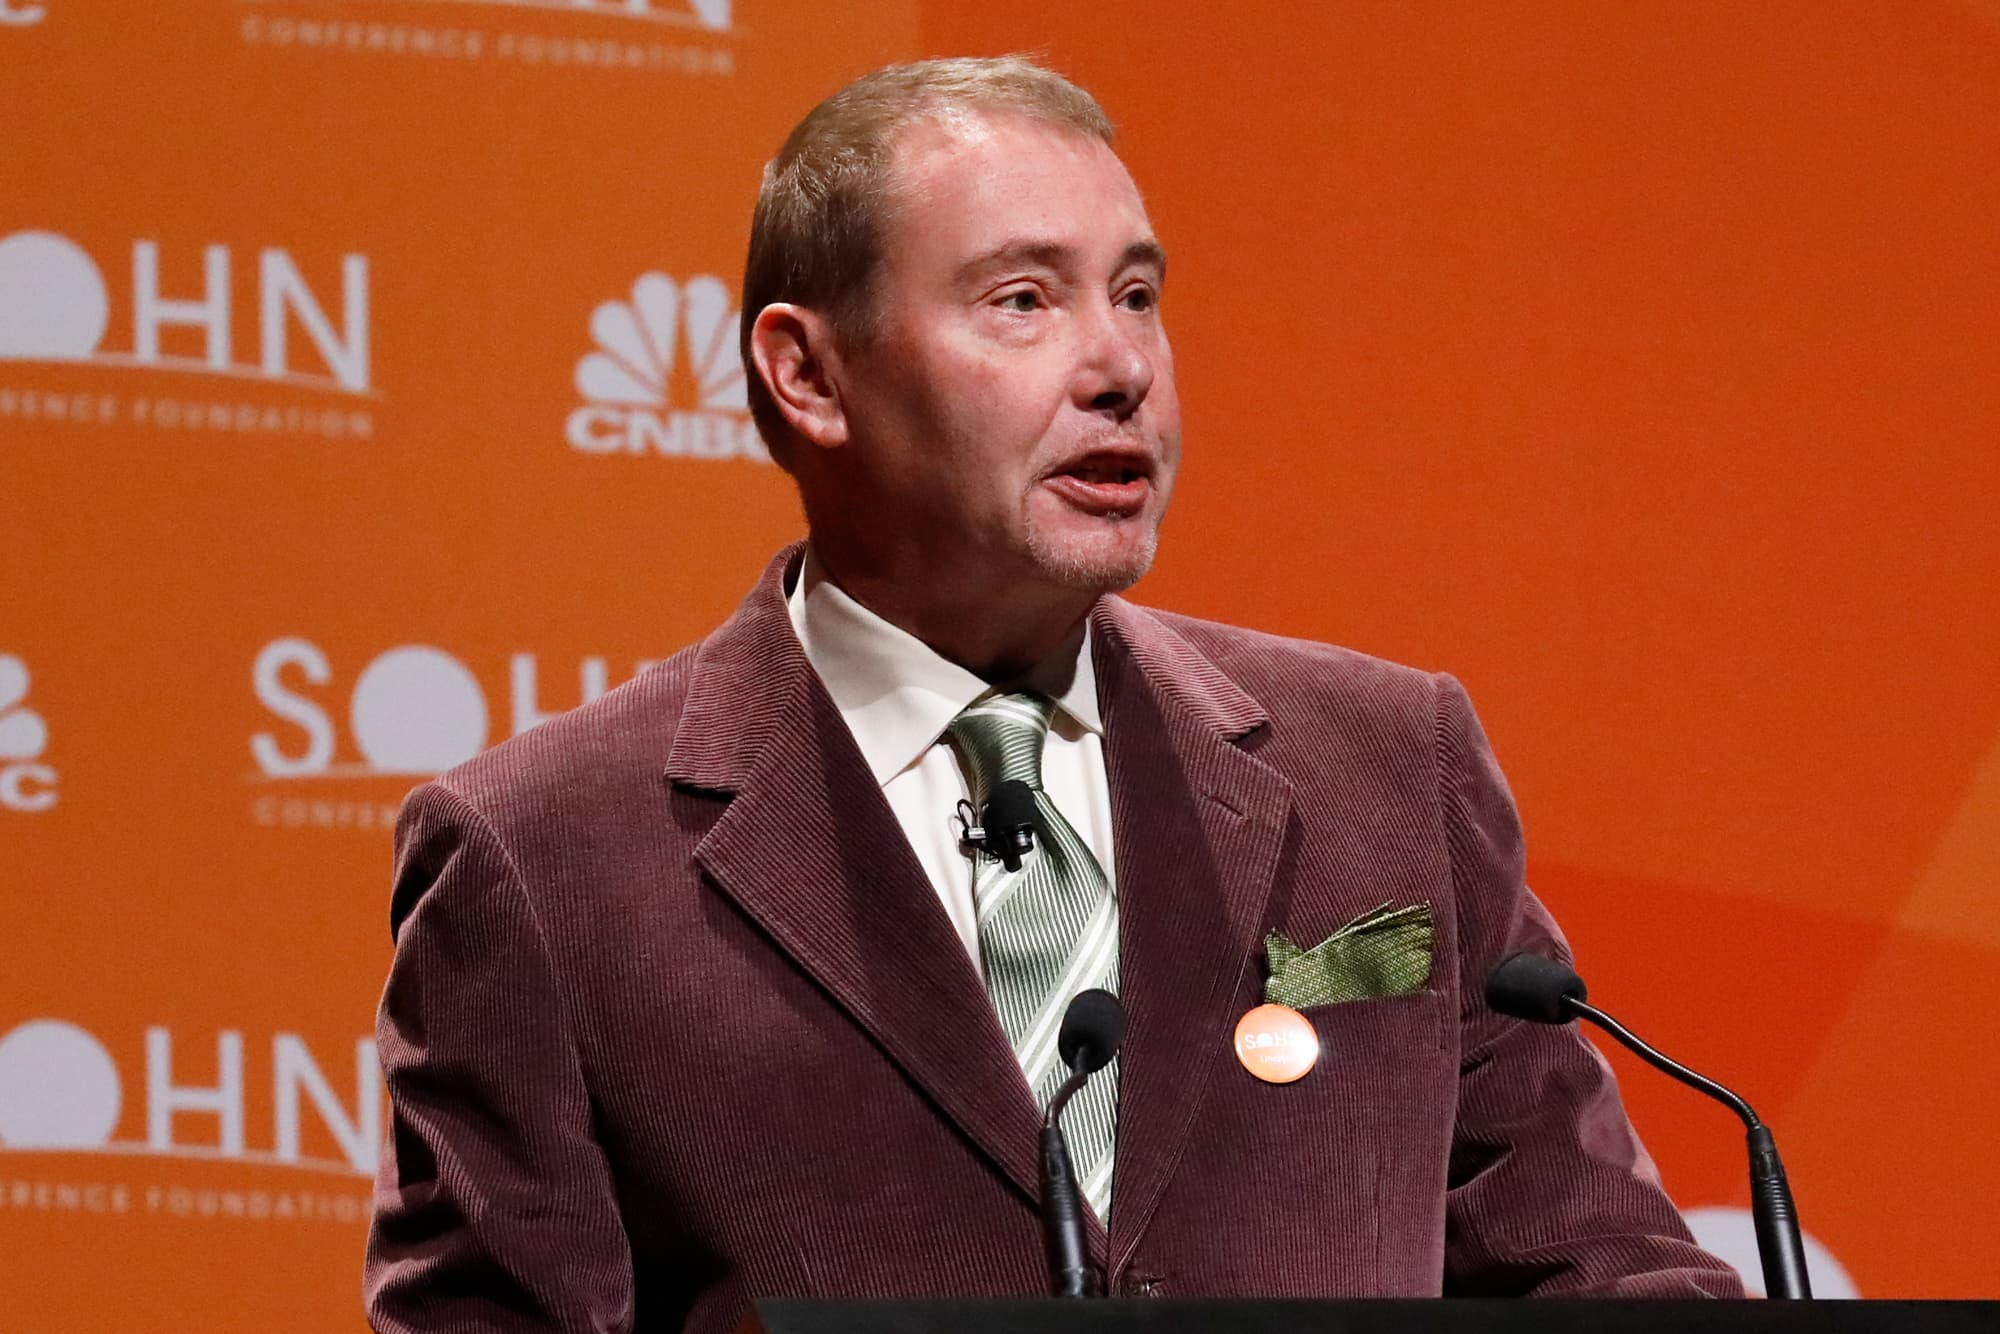 Jeff Gundlach says investors can get rich off interest rate volatility ahead